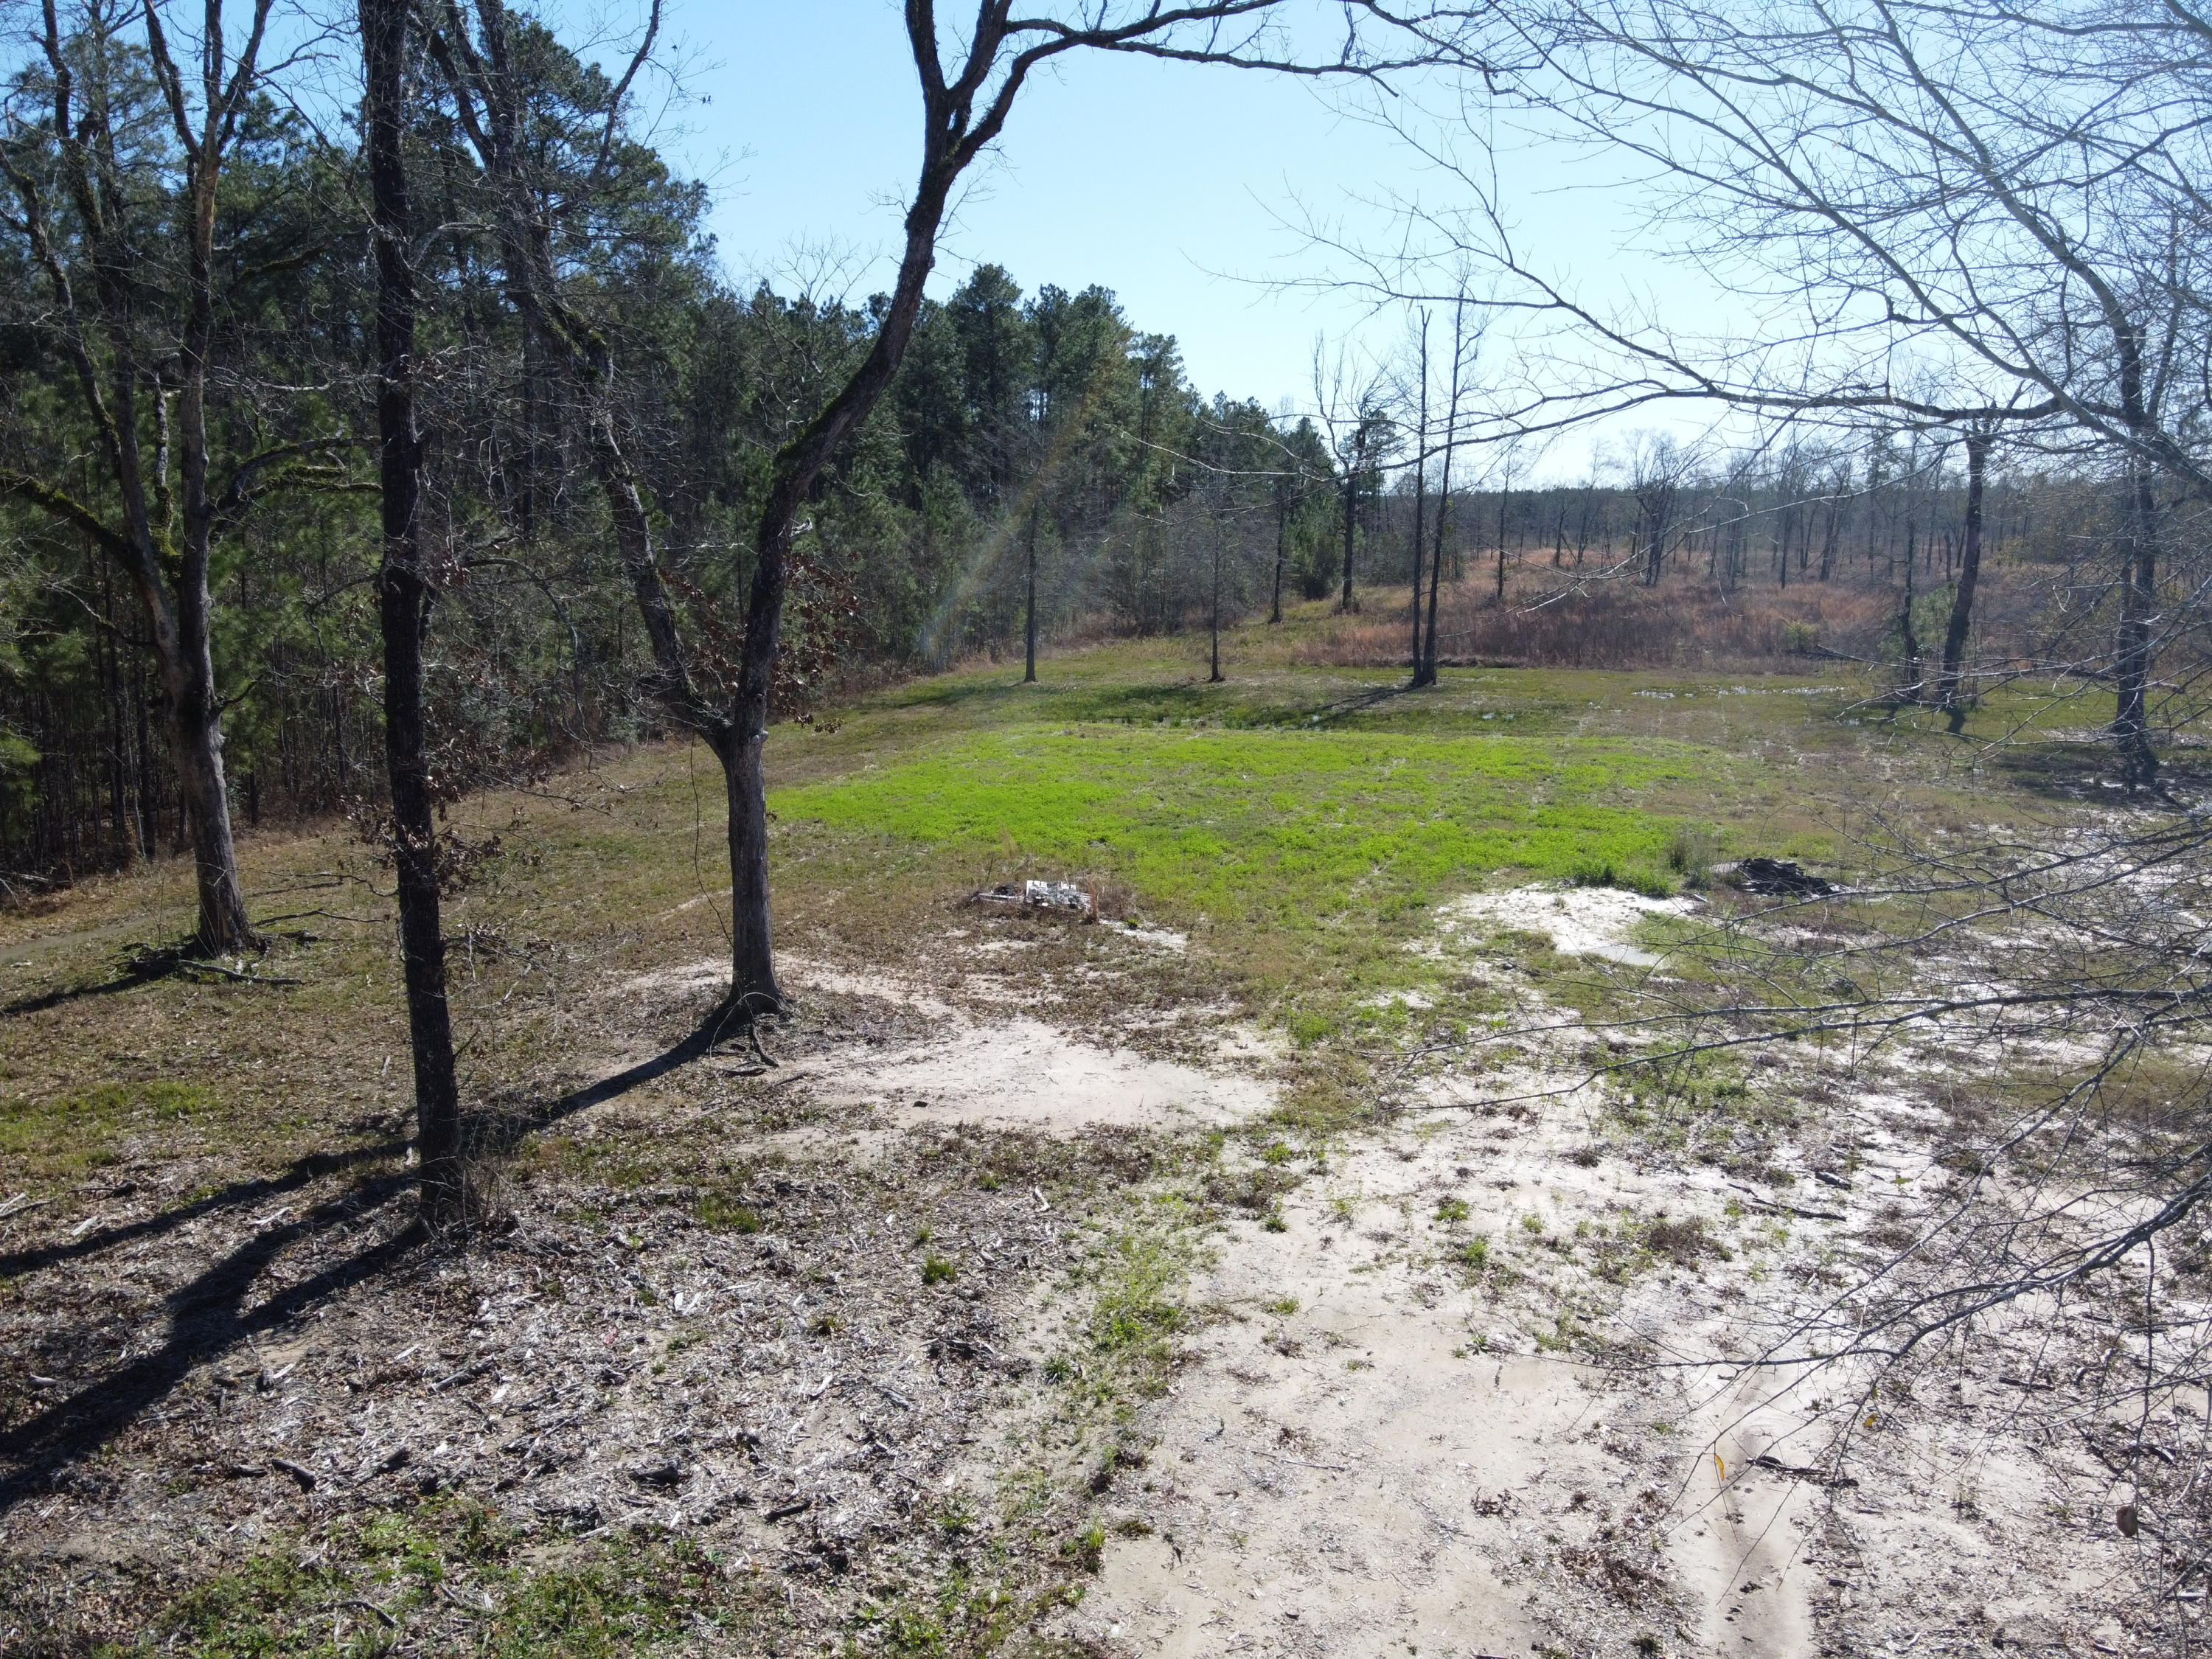 Kinder land for sale,  183 Old Pump Rd. Lot 4, Kinder LA - $26,000